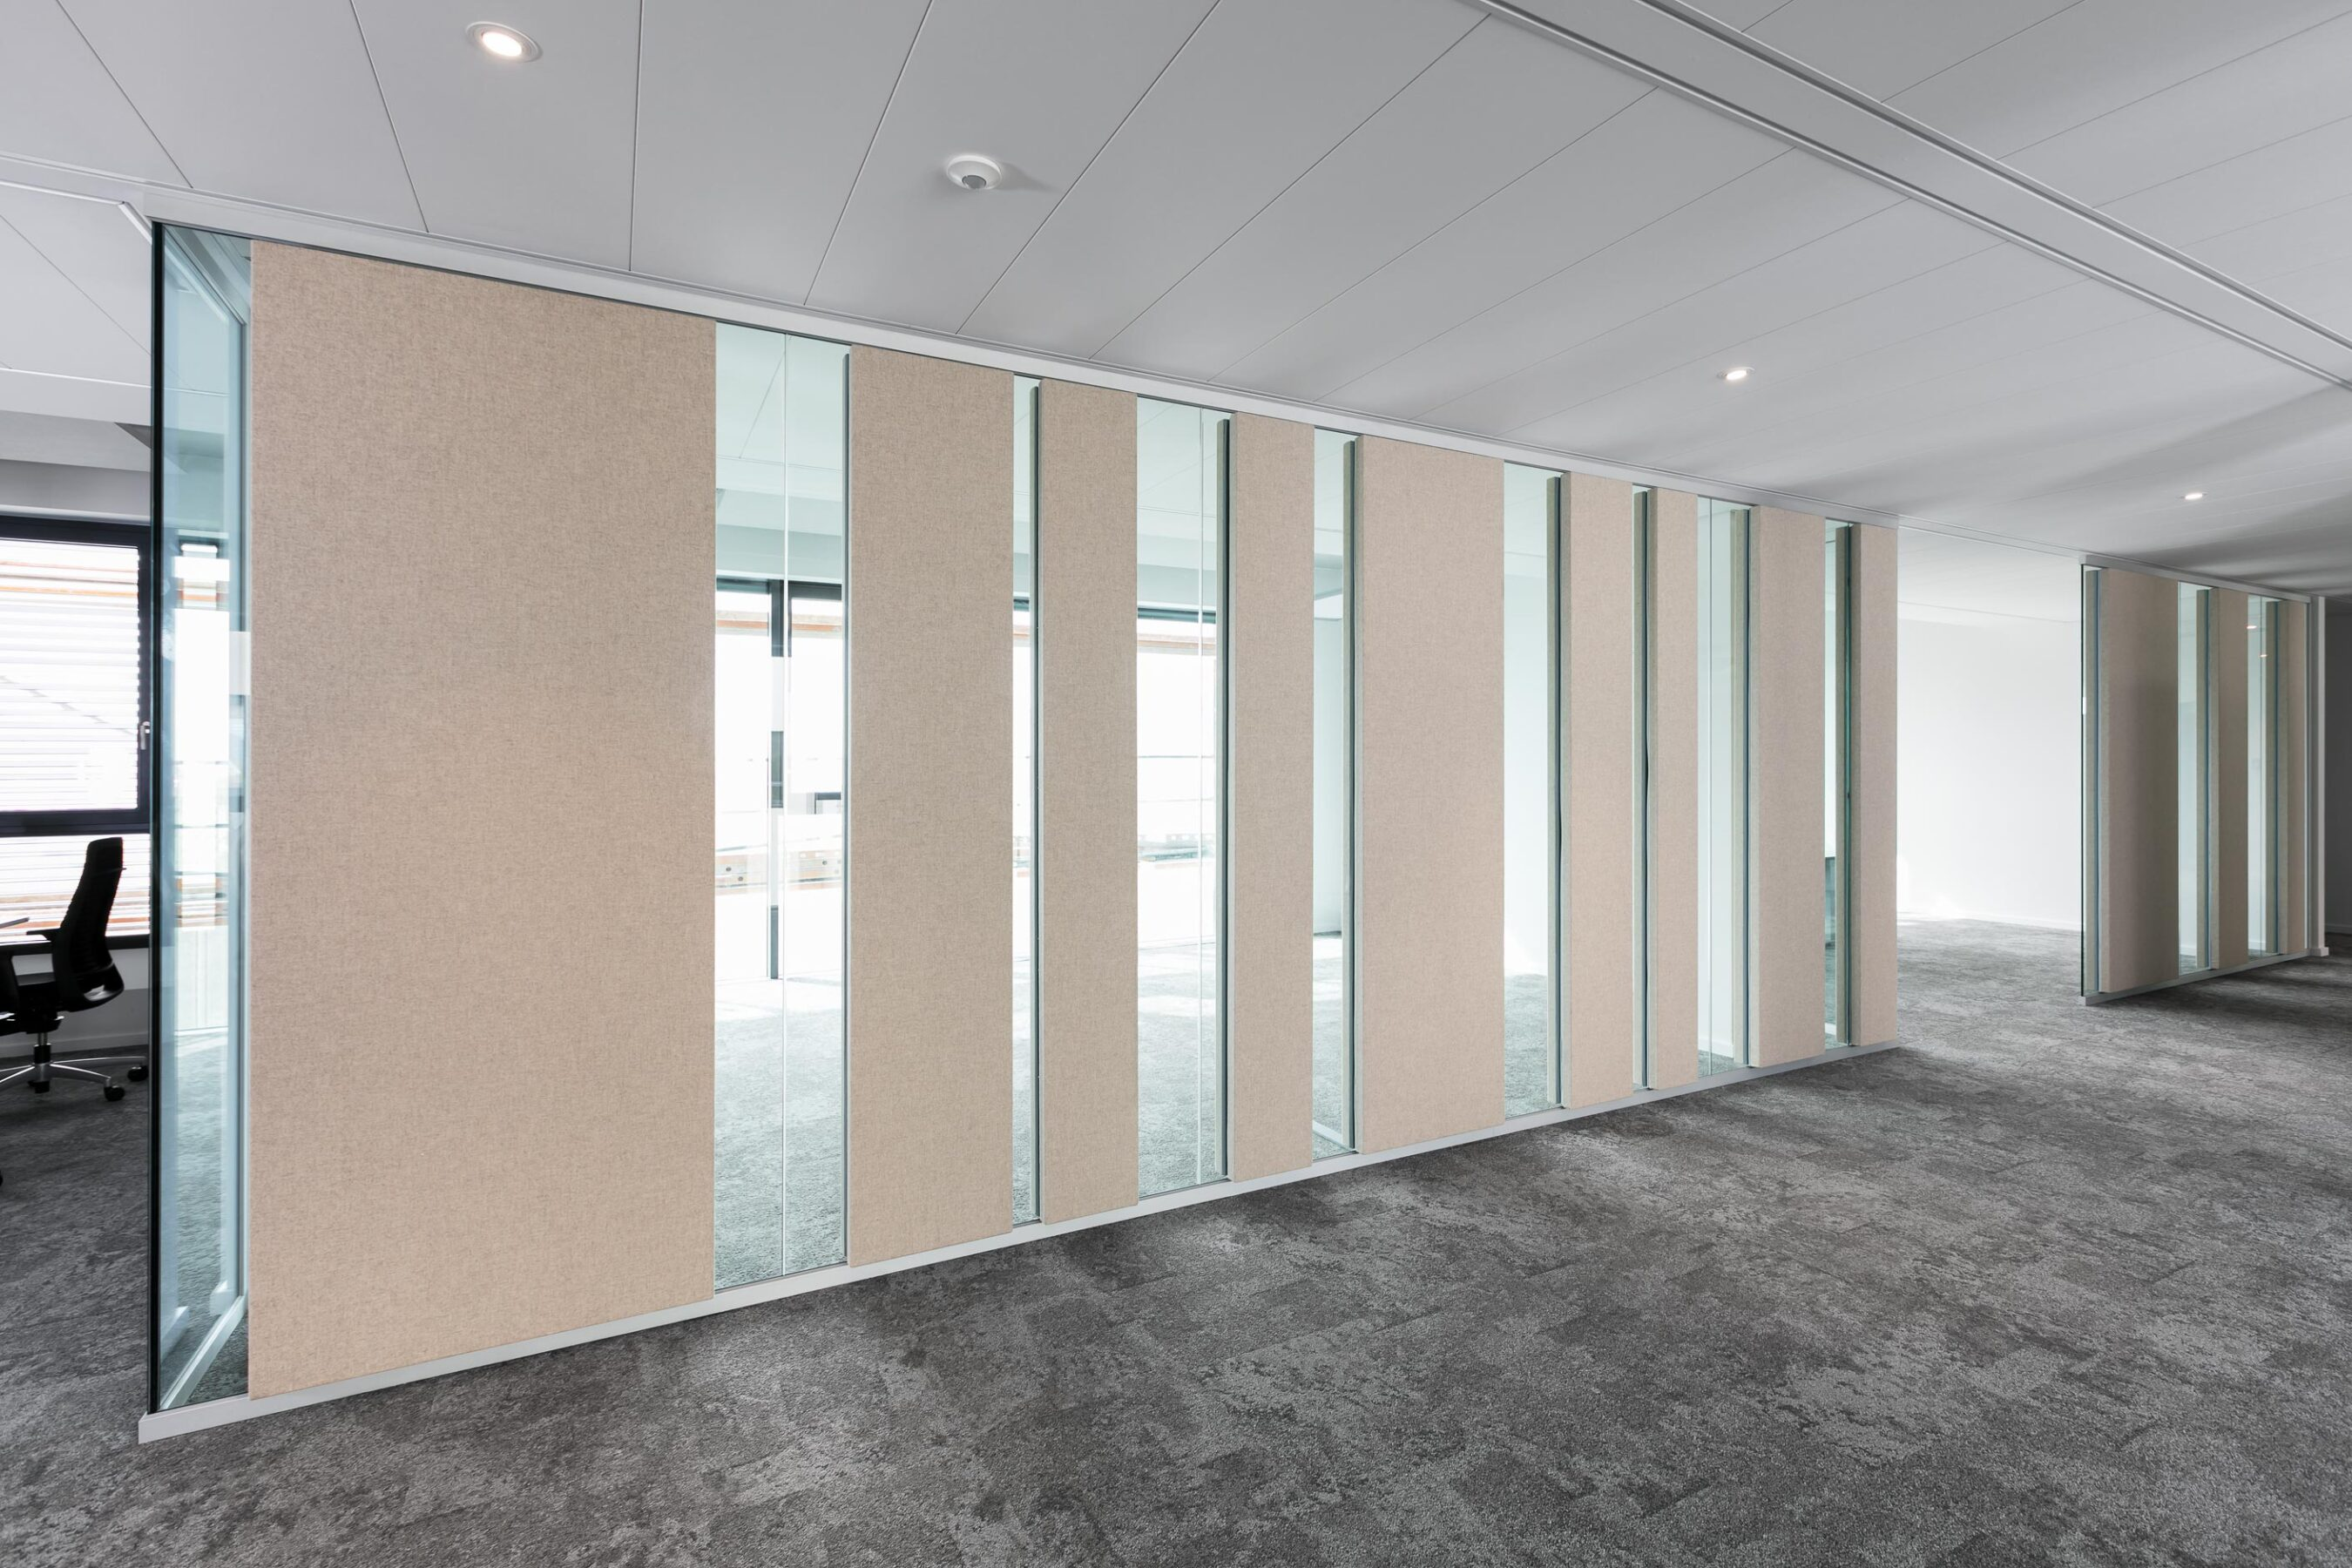 feco-feederle│partition walls│Stadttor Ost